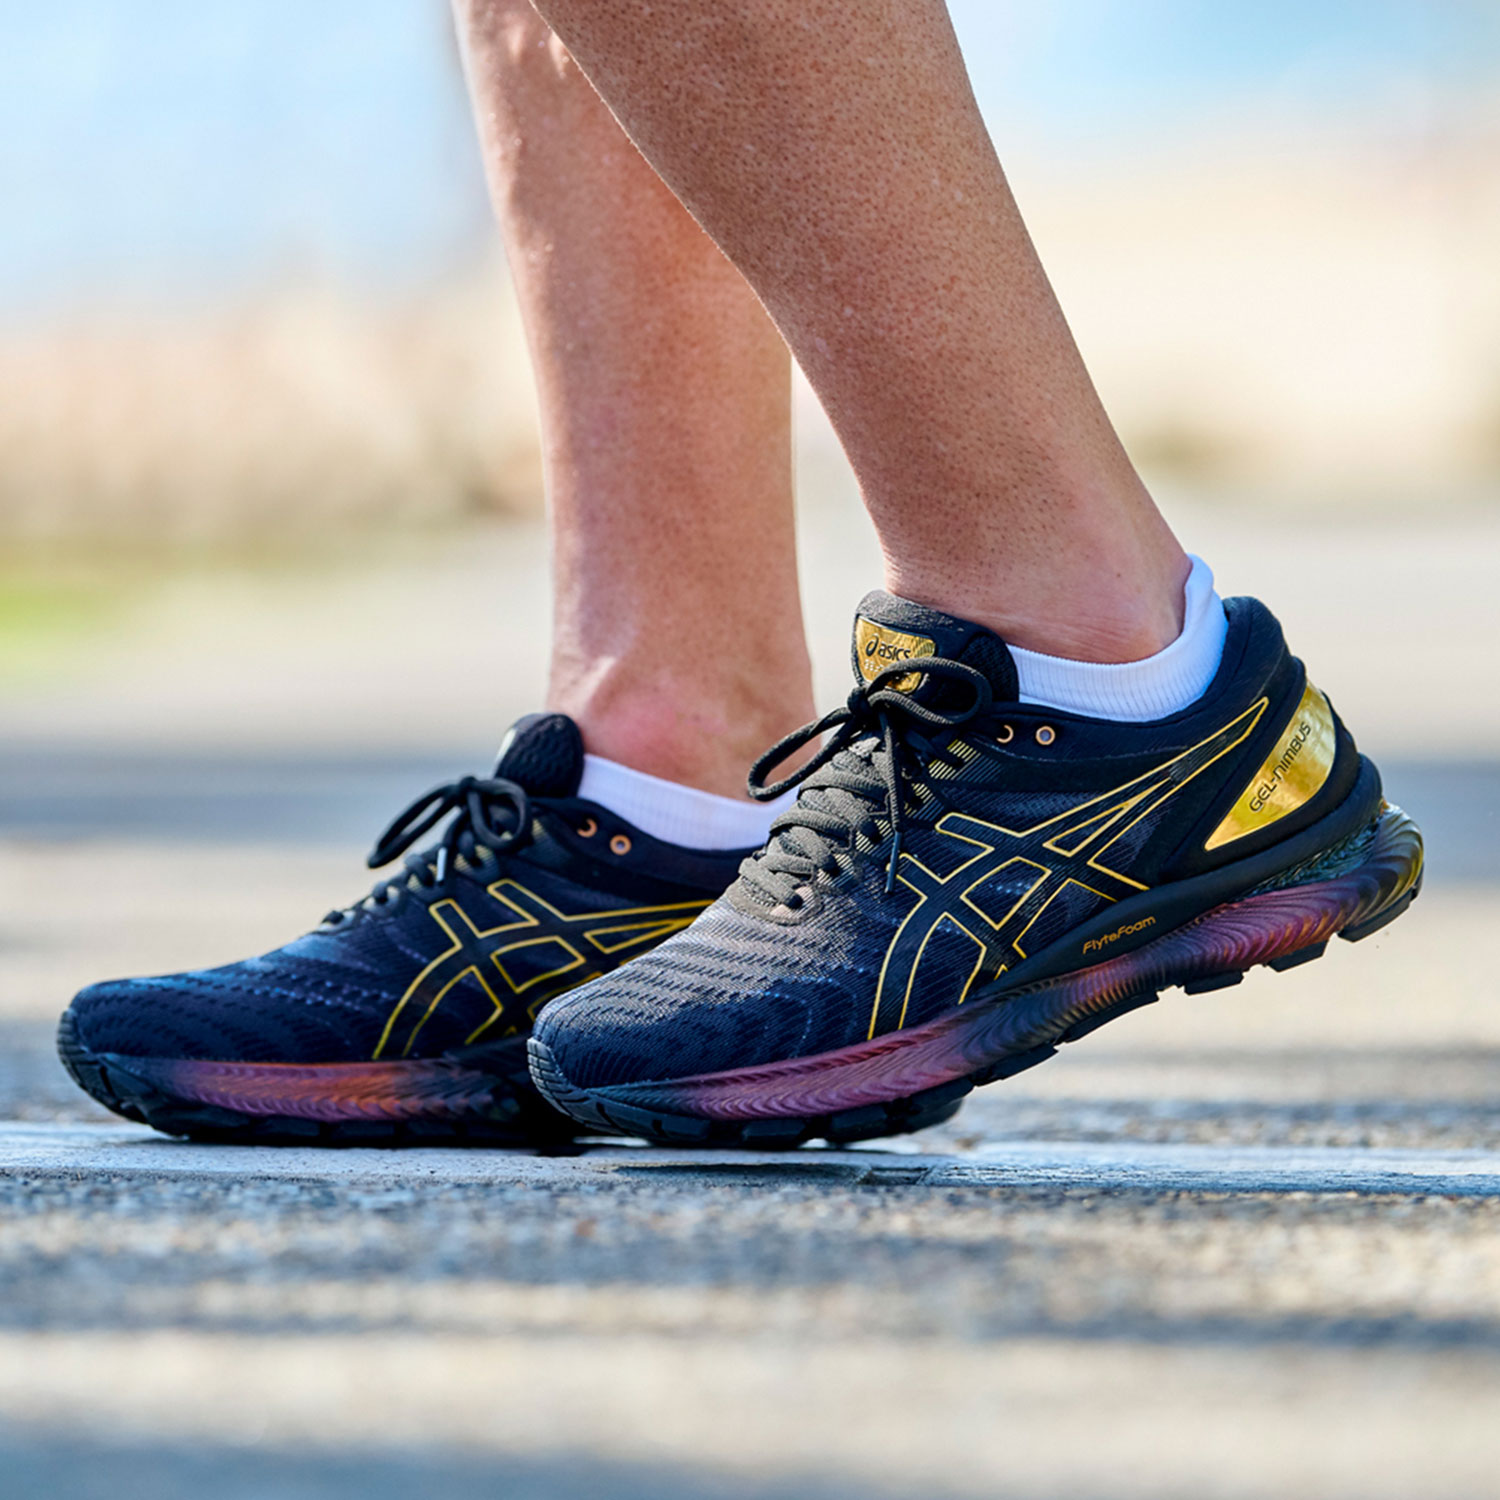 Asics Gel Nimbus 22 Platinum - Black/Pure Gold